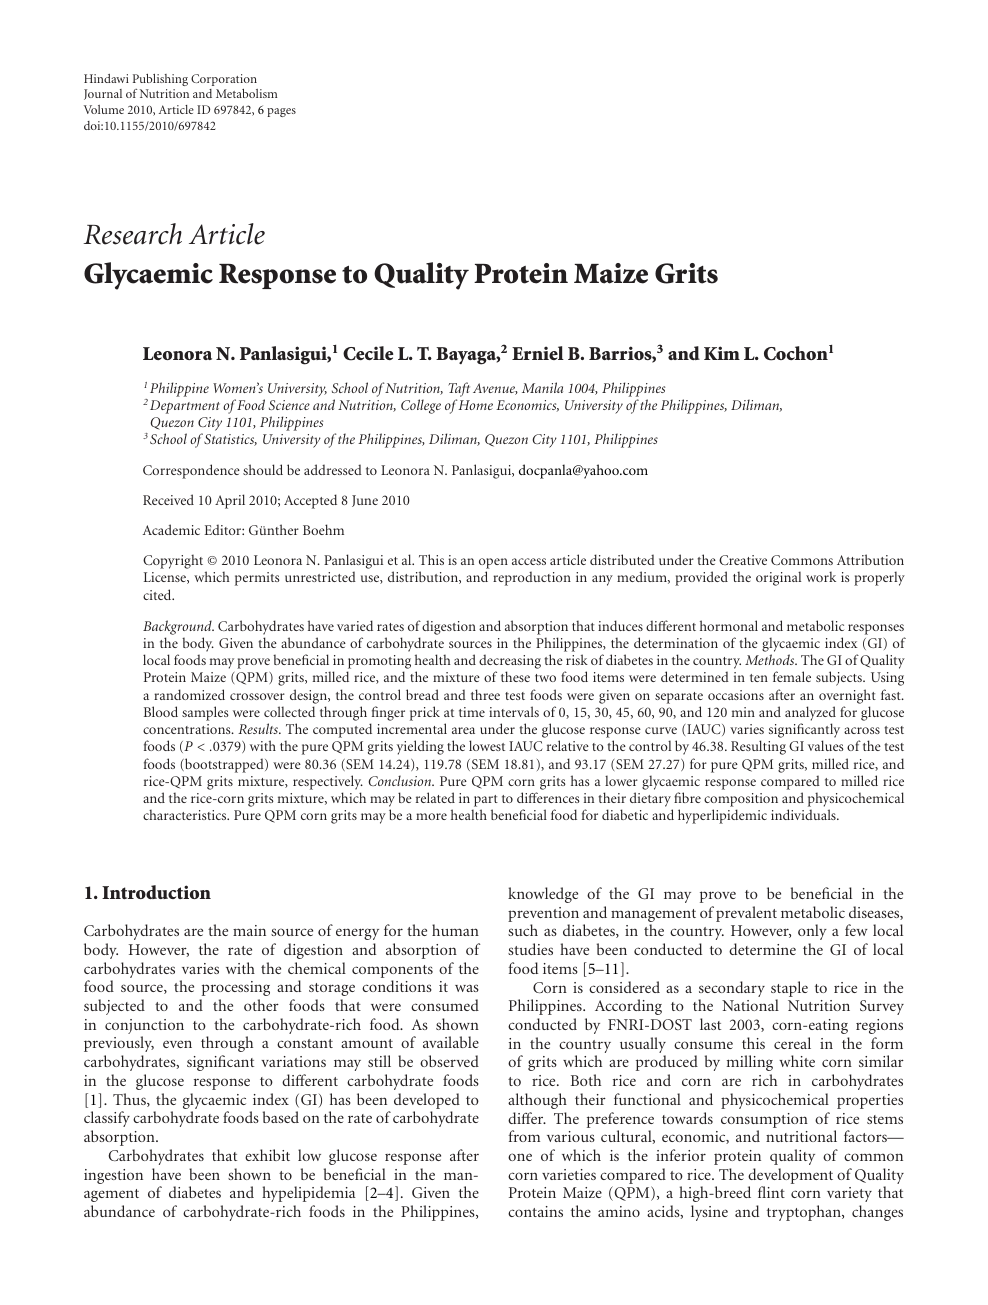 Glycaemic Response To Quality Protein Maize Grits Topic Of Research Paper In Health Sciences Download Scholarly Article Pdf And Read For Free On Cyberleninka Open Science Hub